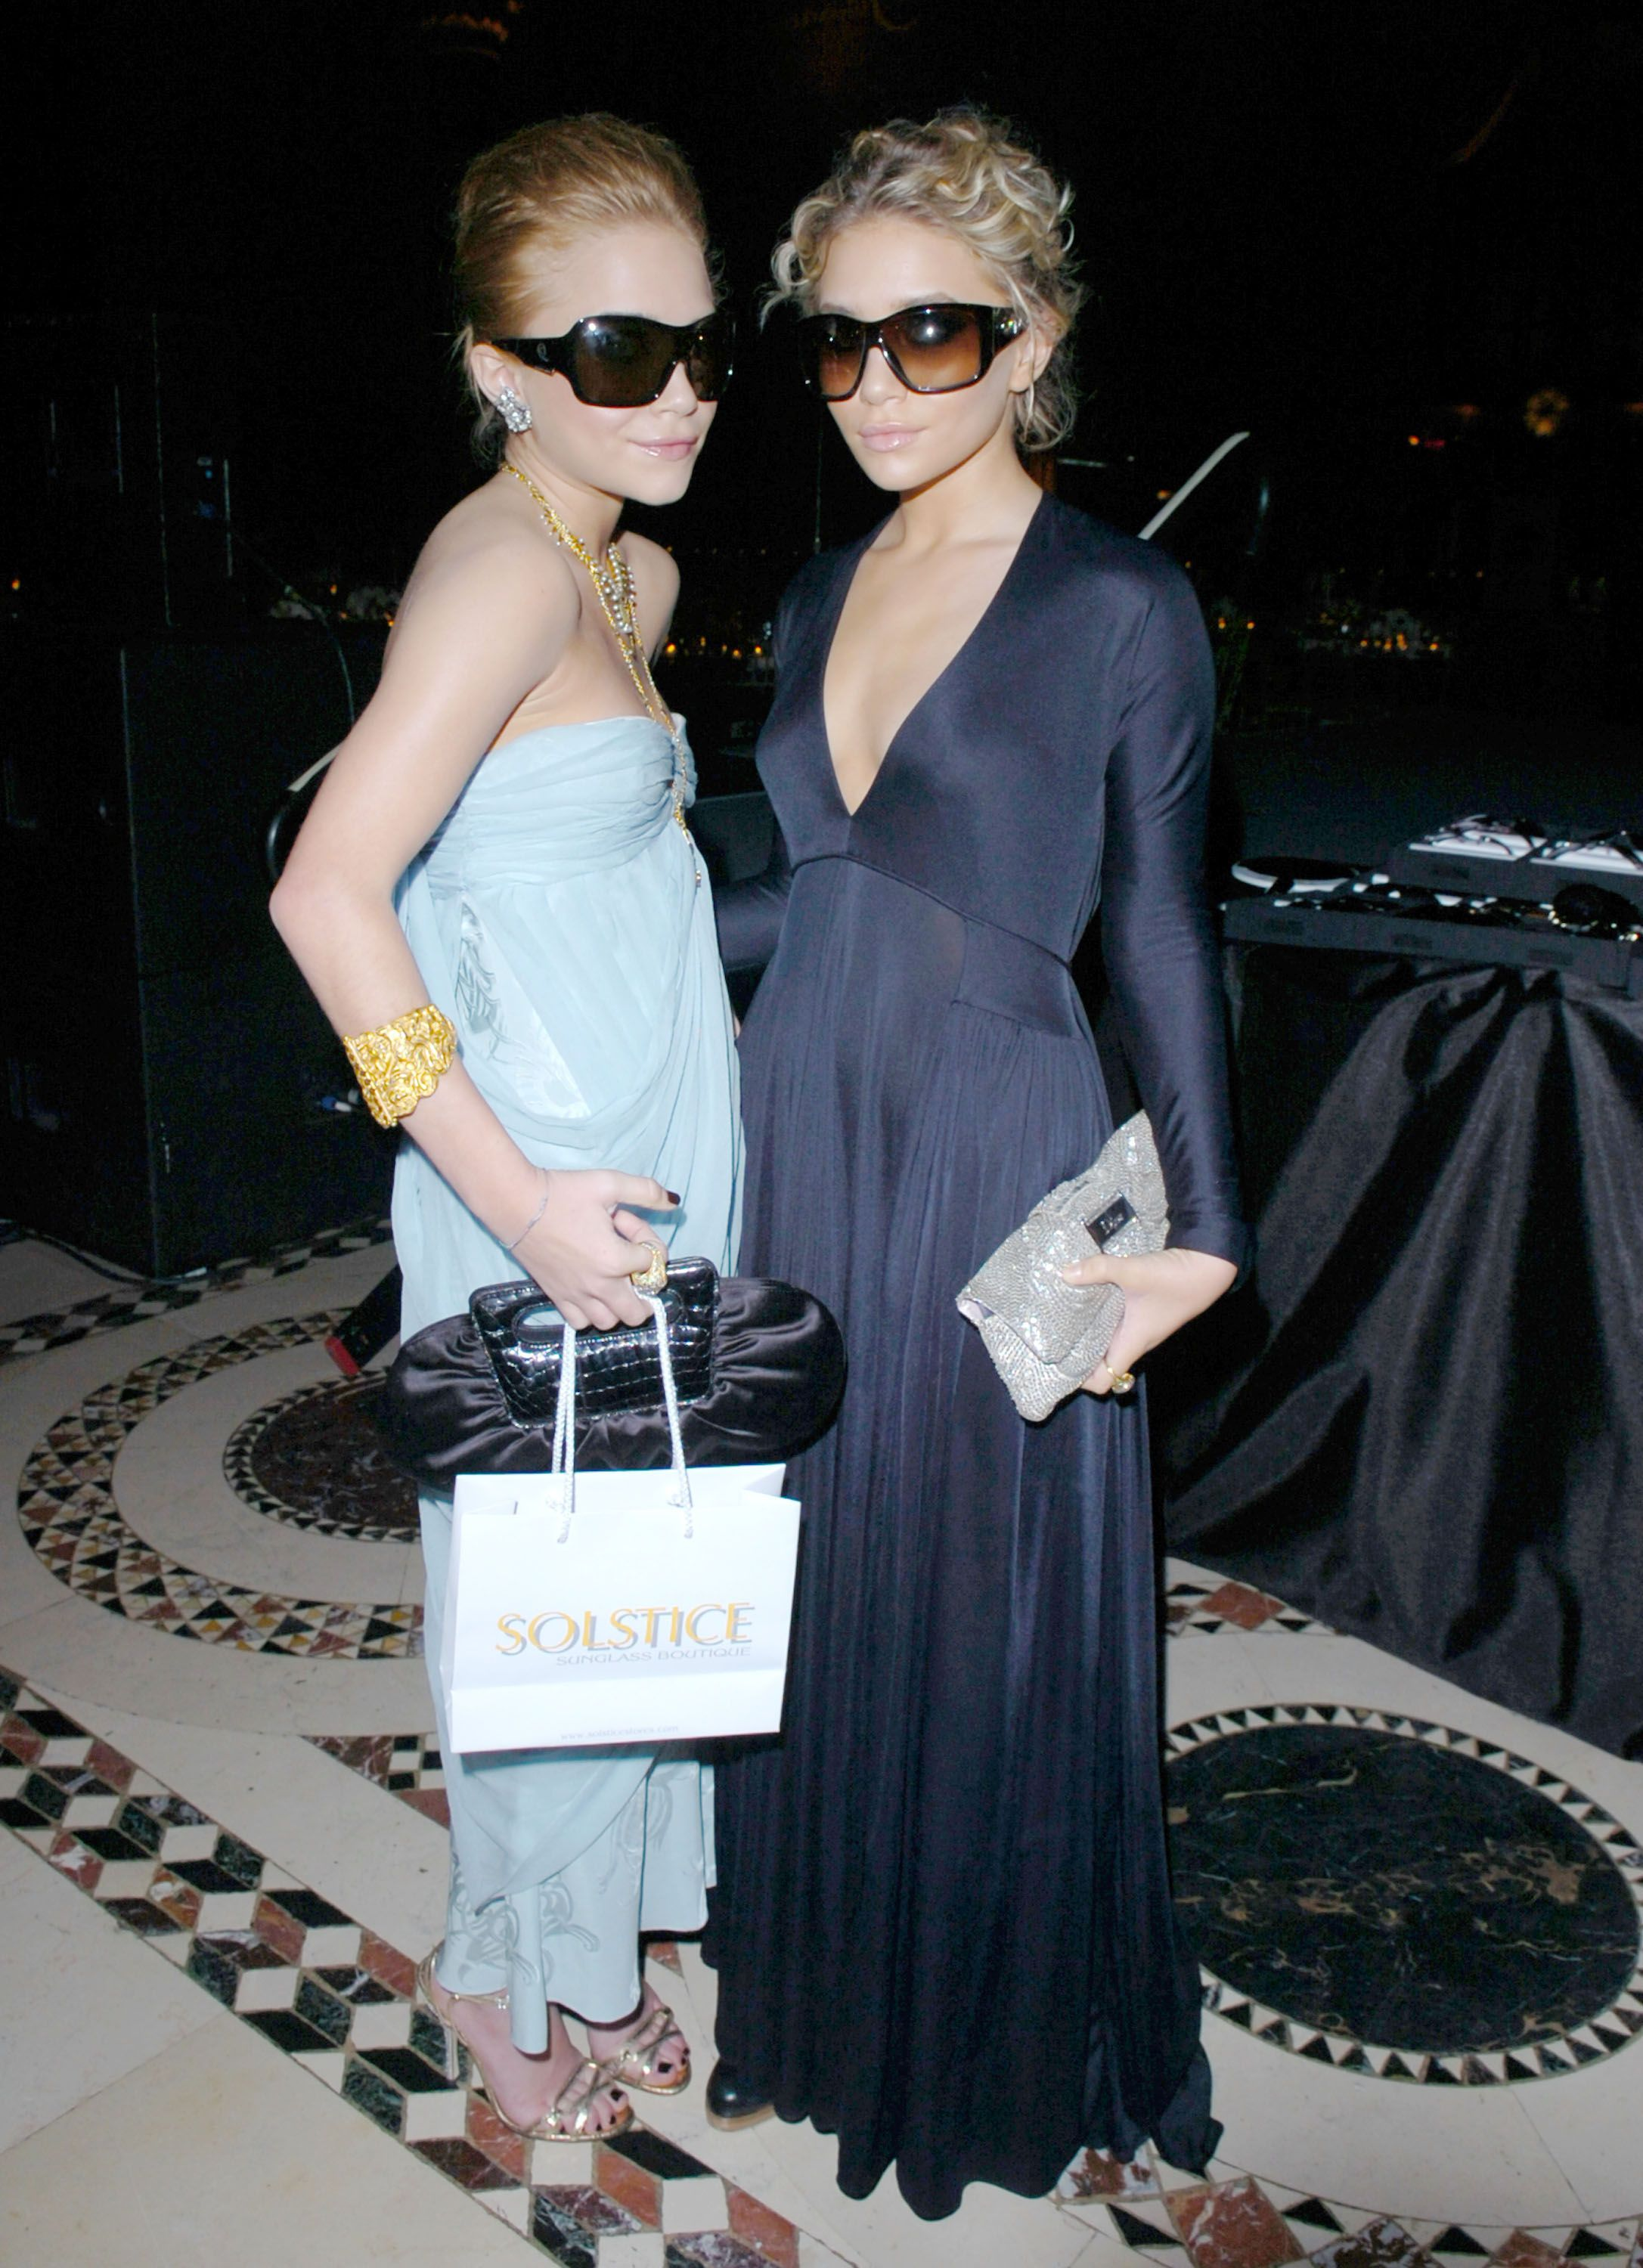 Solstice Sunglass Boutique and Safilo USA at The 9th Annual ACE Awards